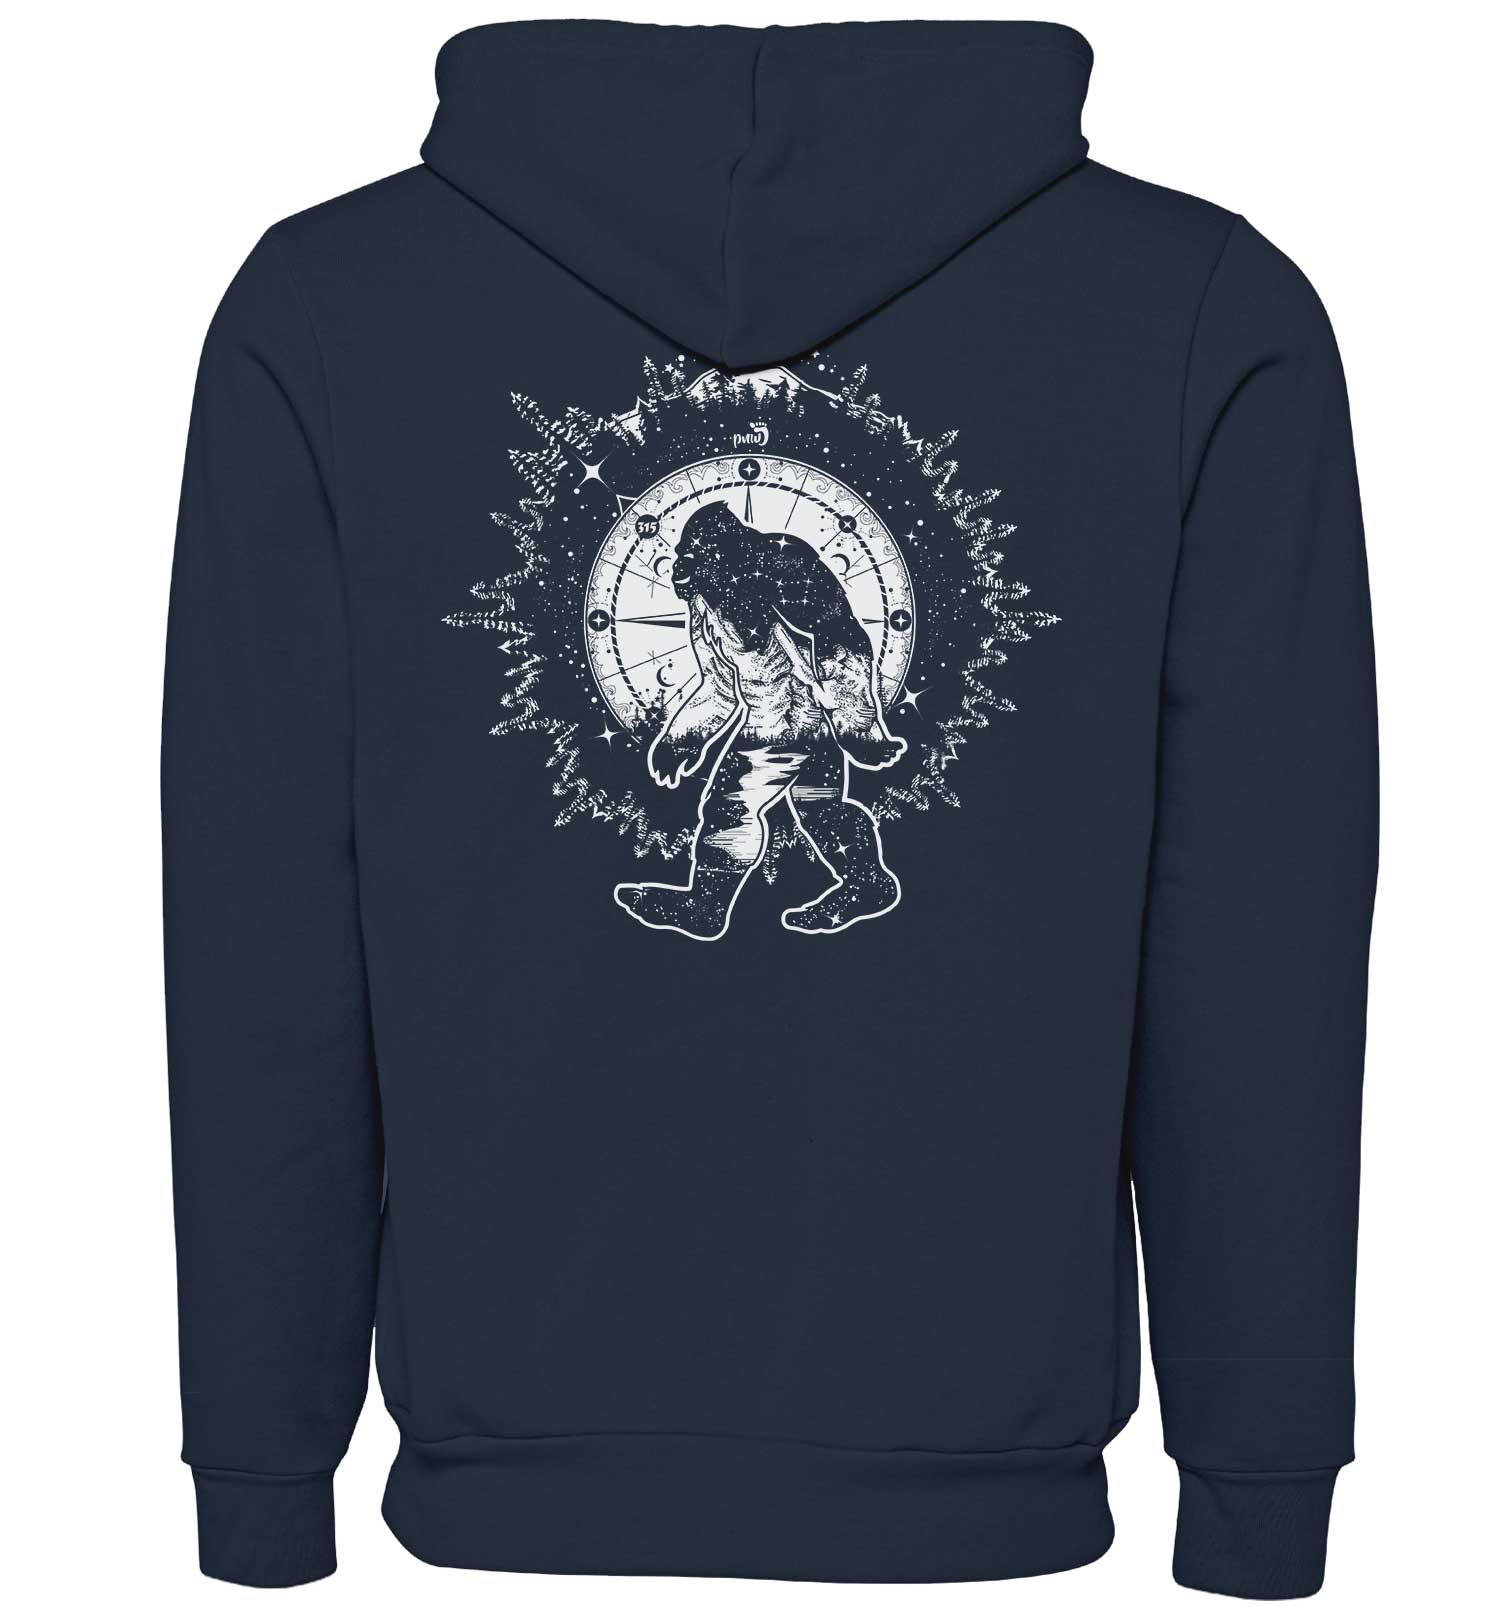 Bigfoot Nights - Sweatshirt - Hoodie - Navy - Back - PNW Journey